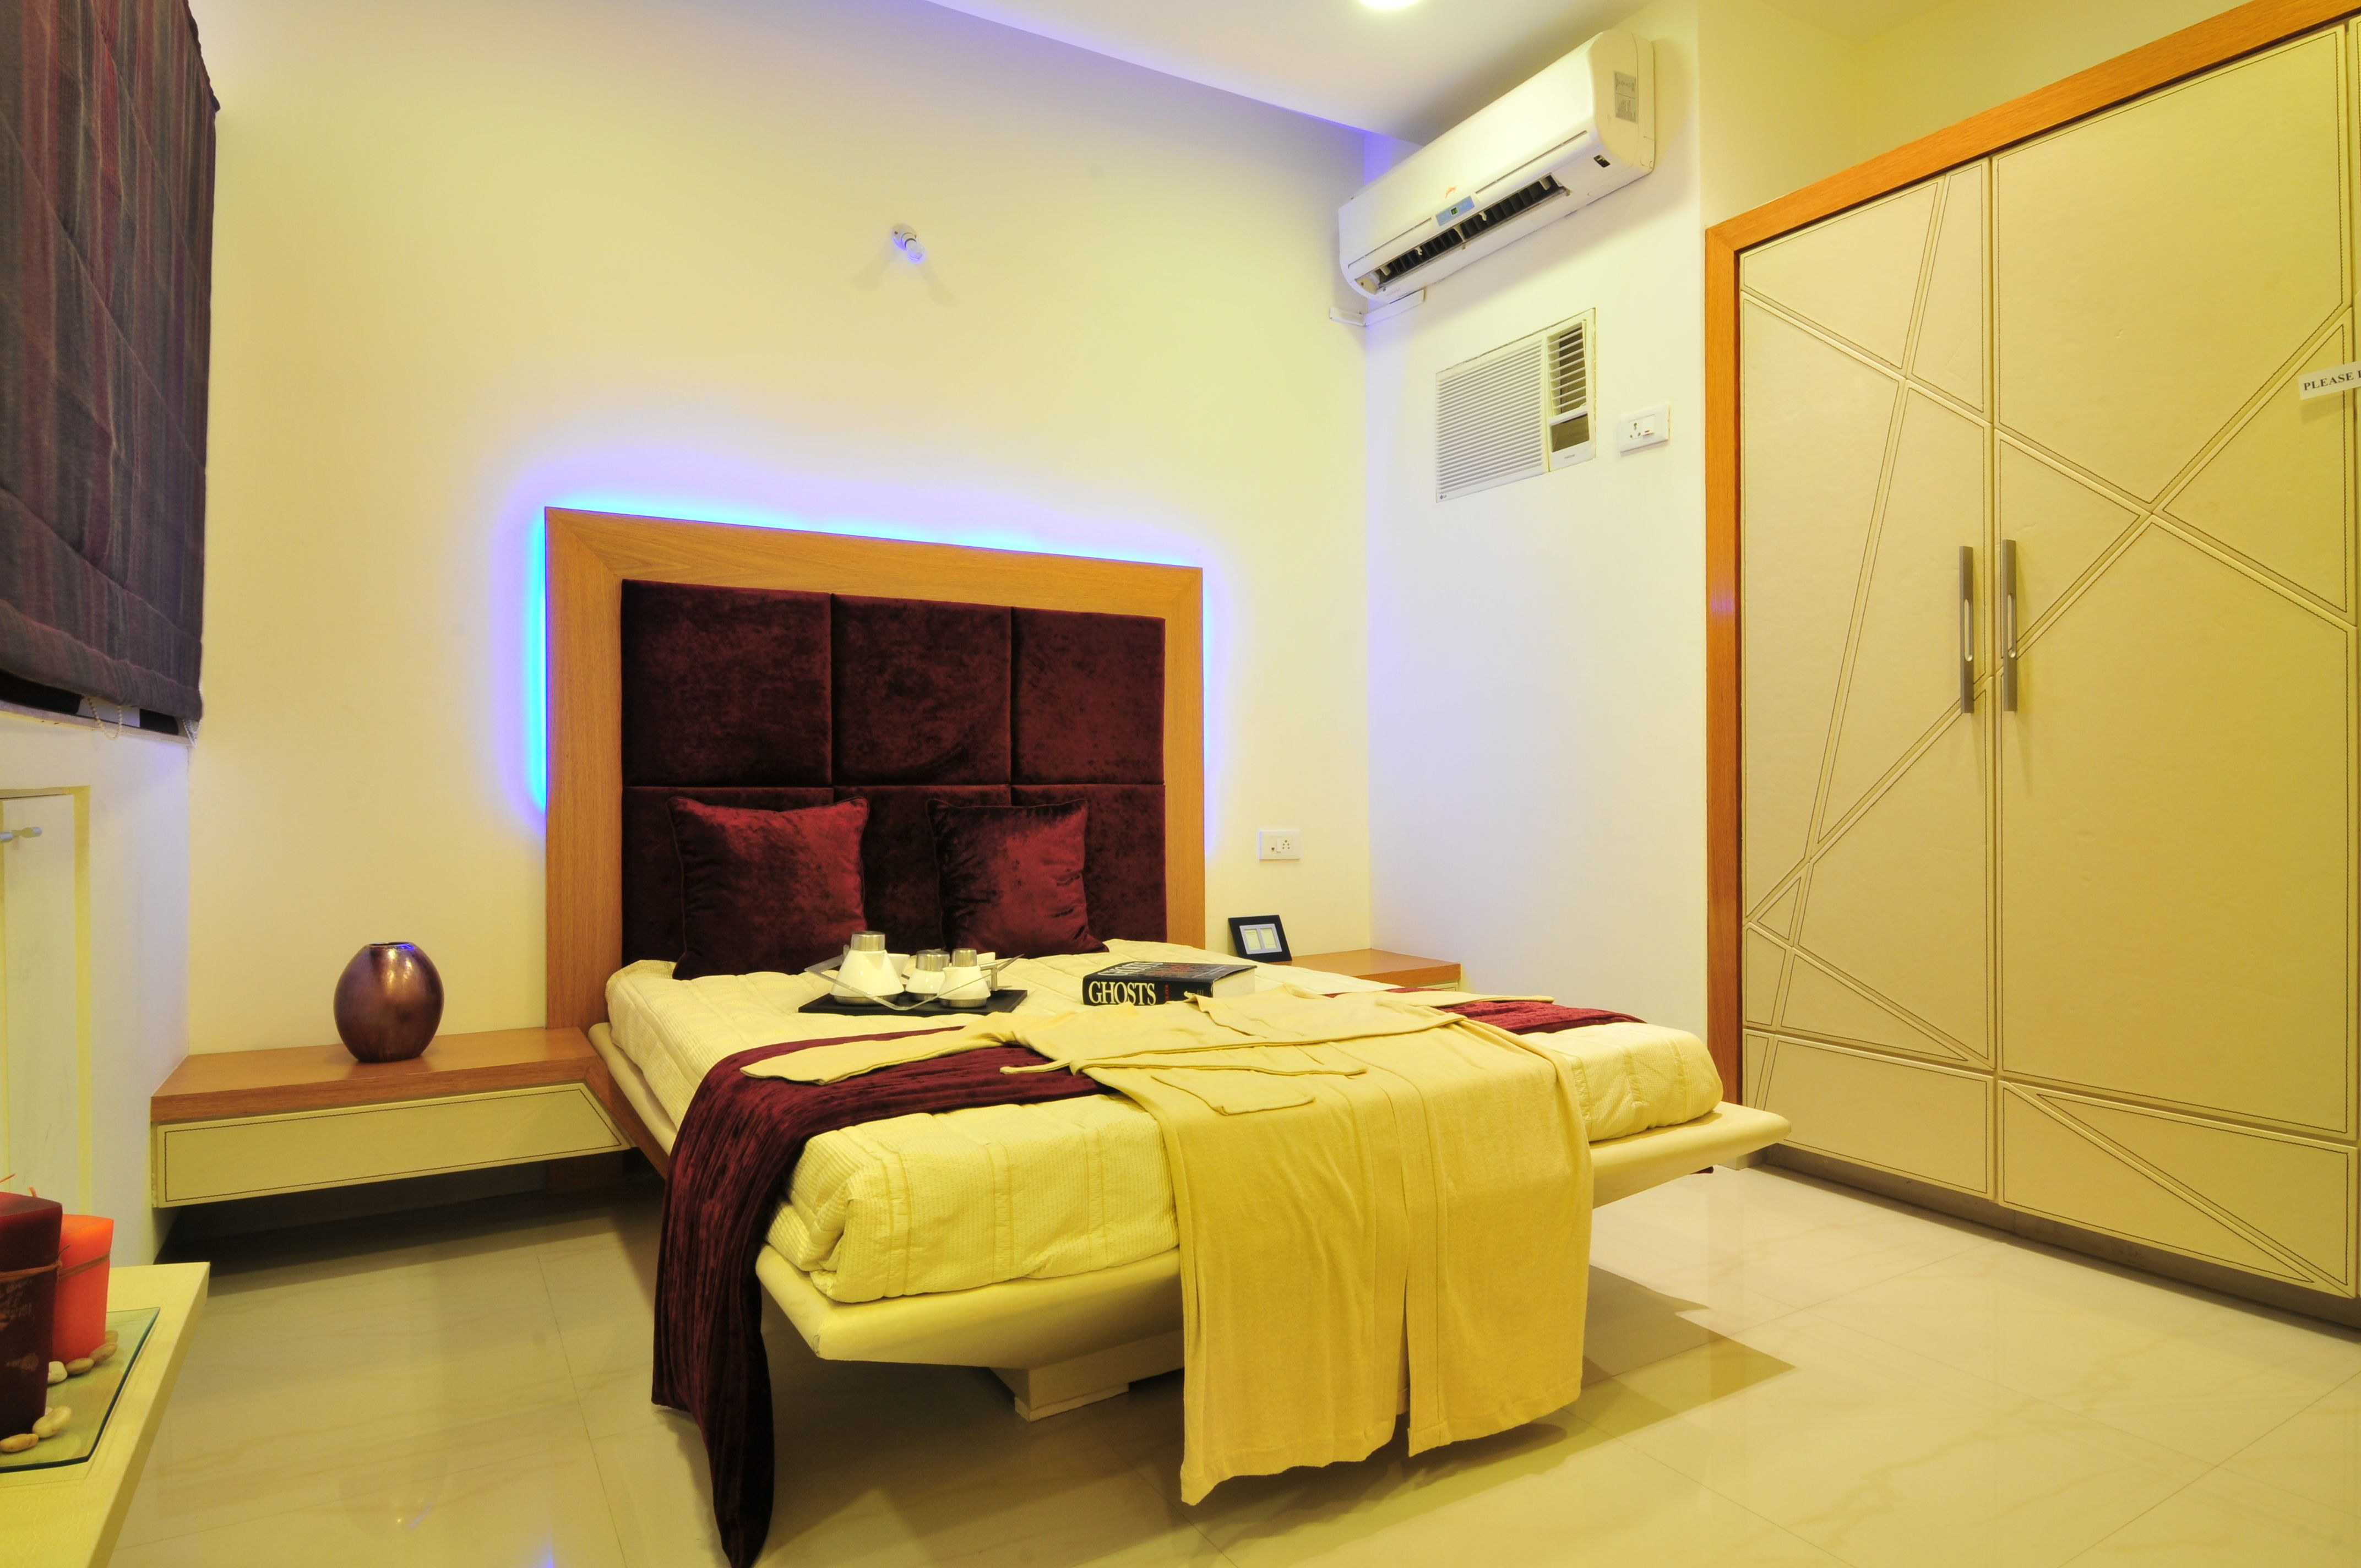 Master bedroom with 2 beds  Spacious and trendy master bedroom at Global City with wonderful